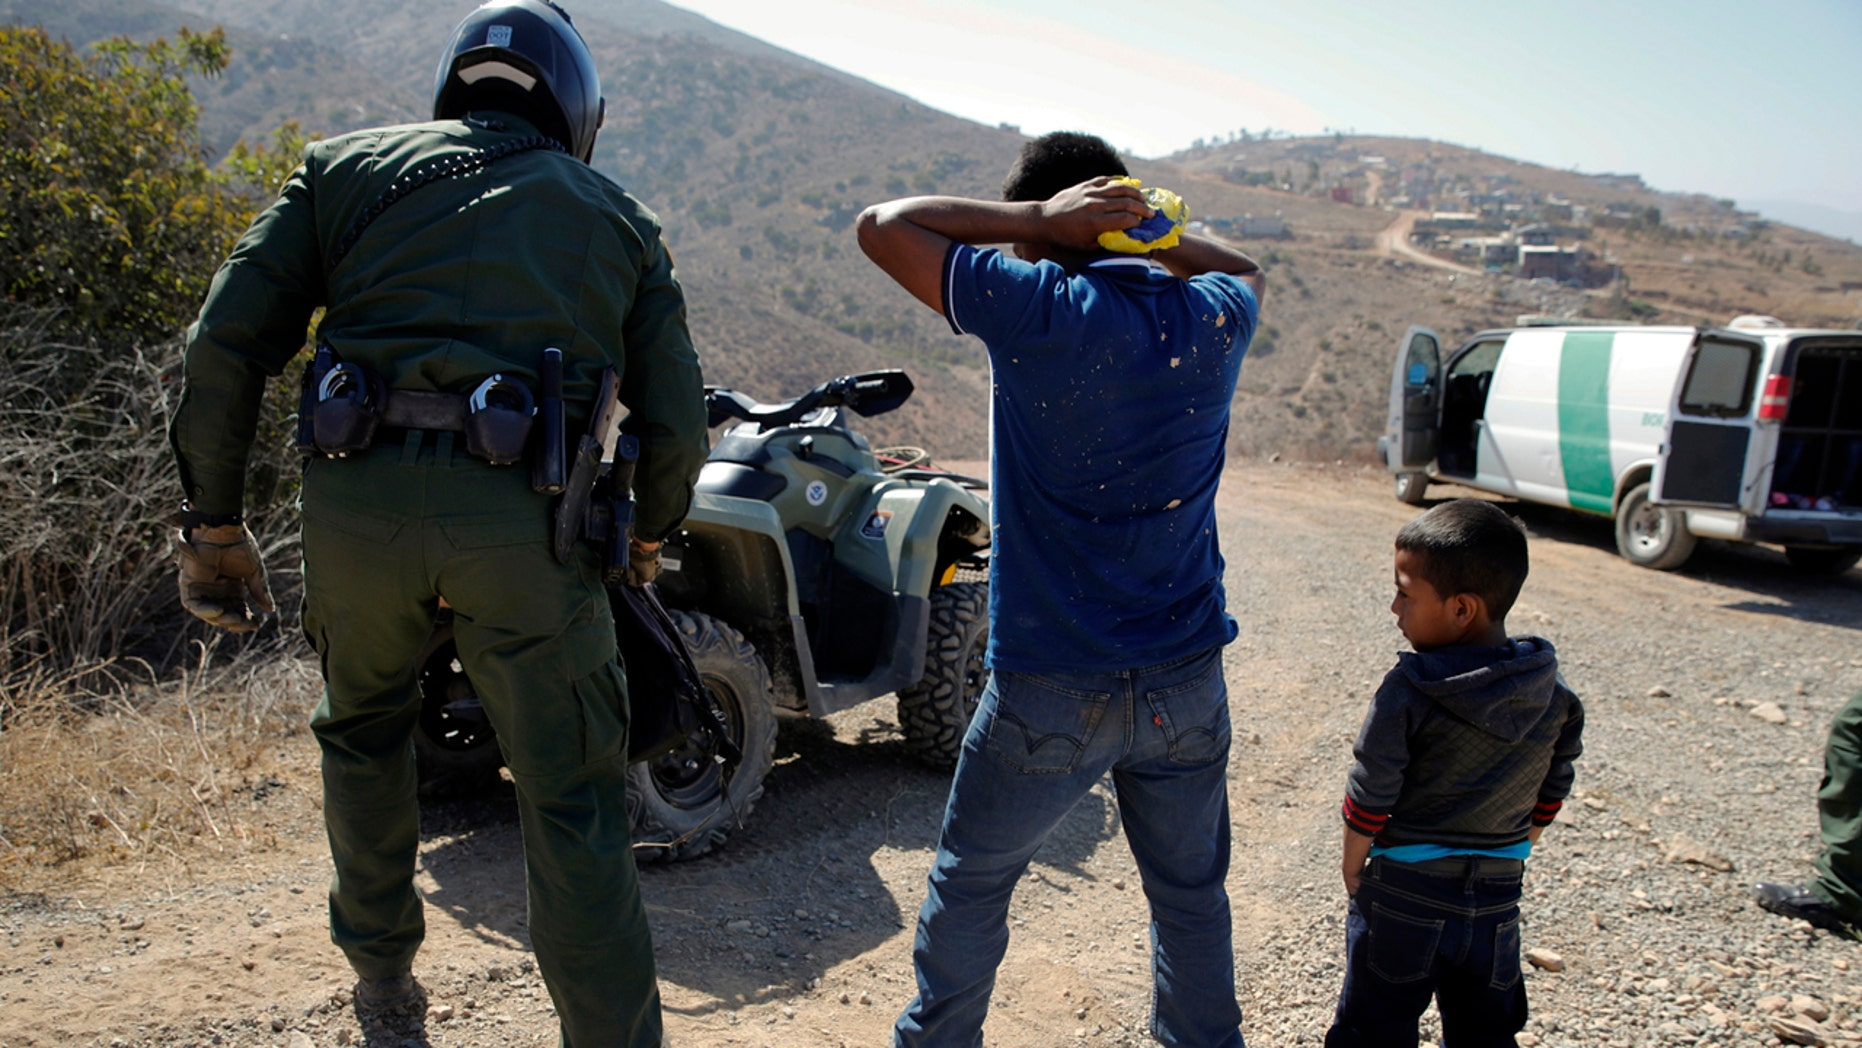 FILE - In this June 28, 2018, file photo, a Guatemalan father and son, who crossed the U.S.-Mexico border illegally, are apprehended by a U.S. Border Patrol agent in San Diego. California will introduce group trials on Monday, July 9, for people charged with entering the country illegally. Federal prosecutors in Arizona, Texas and New Mexico have long embraced these hearings, which critics call assembly-line justice. California was a lone holdout and the Justice Department didn't seriously challenge its position until the arrival of Attorney General Jeff Sessions. (AP Photo/Jae C. Hong, File)